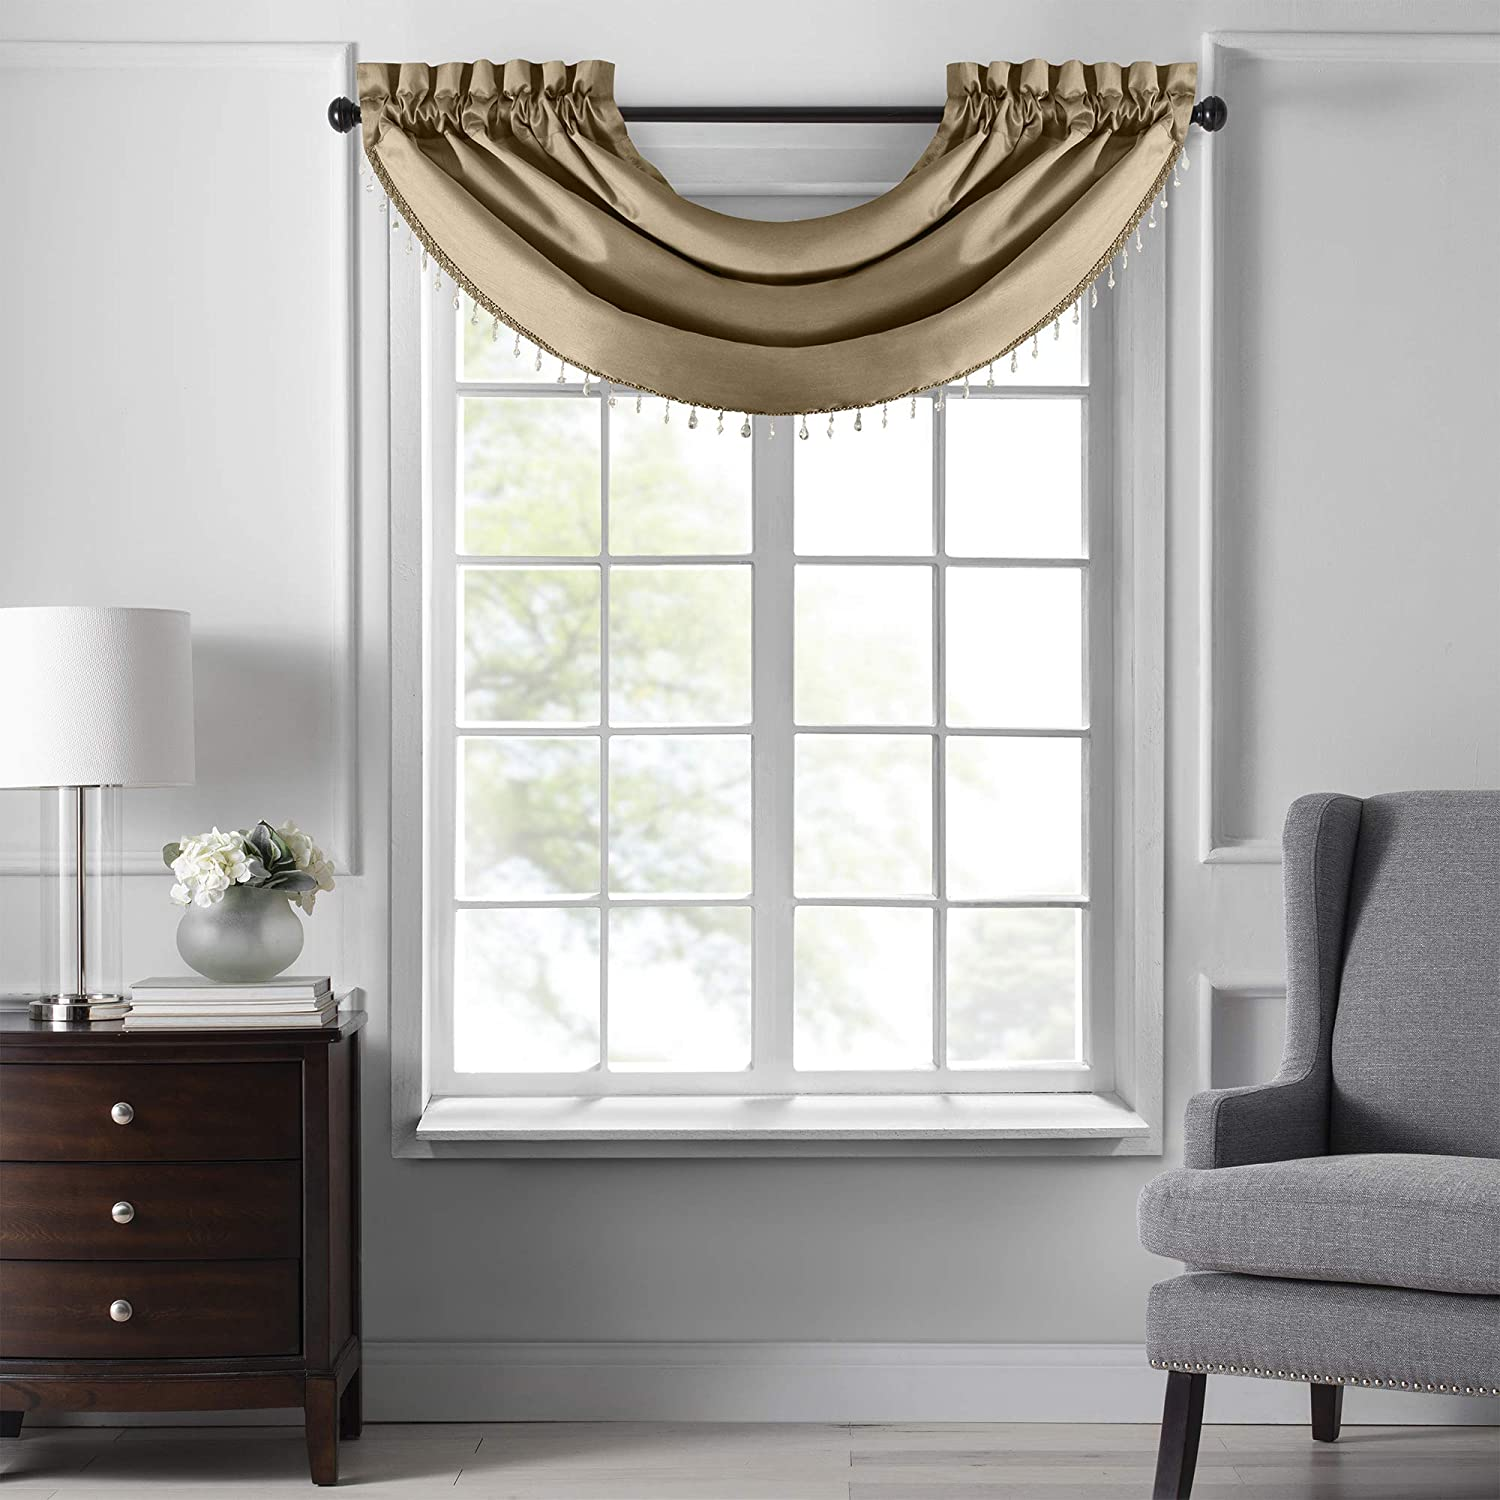 Elrene Home Fashions Colette Faux Silk Waterfall Beaded Window Valance, 42